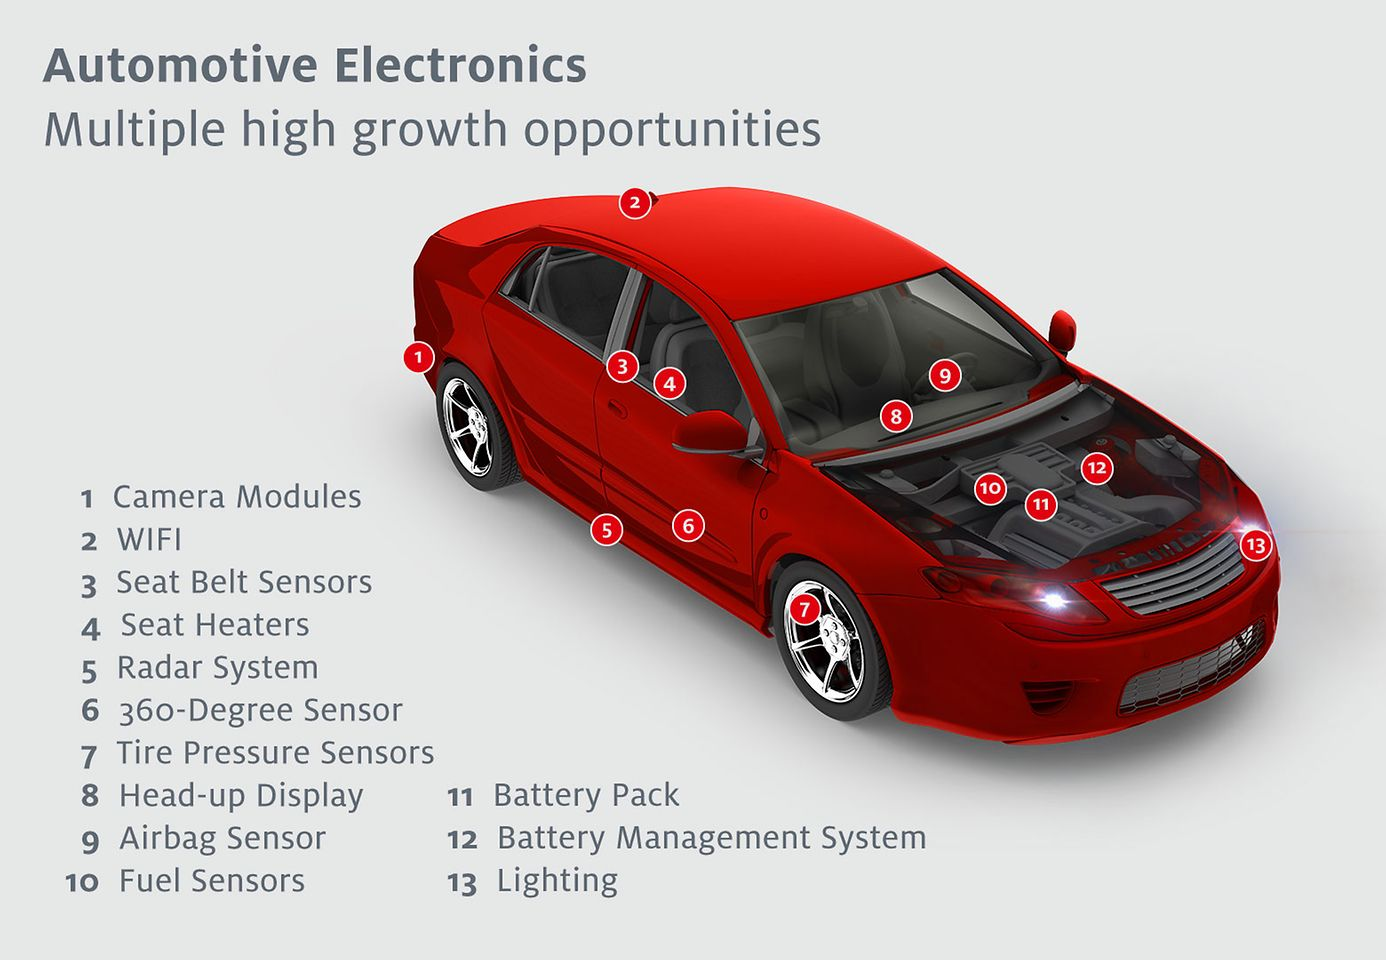 Solutions from Henkel for automotive electronics applications